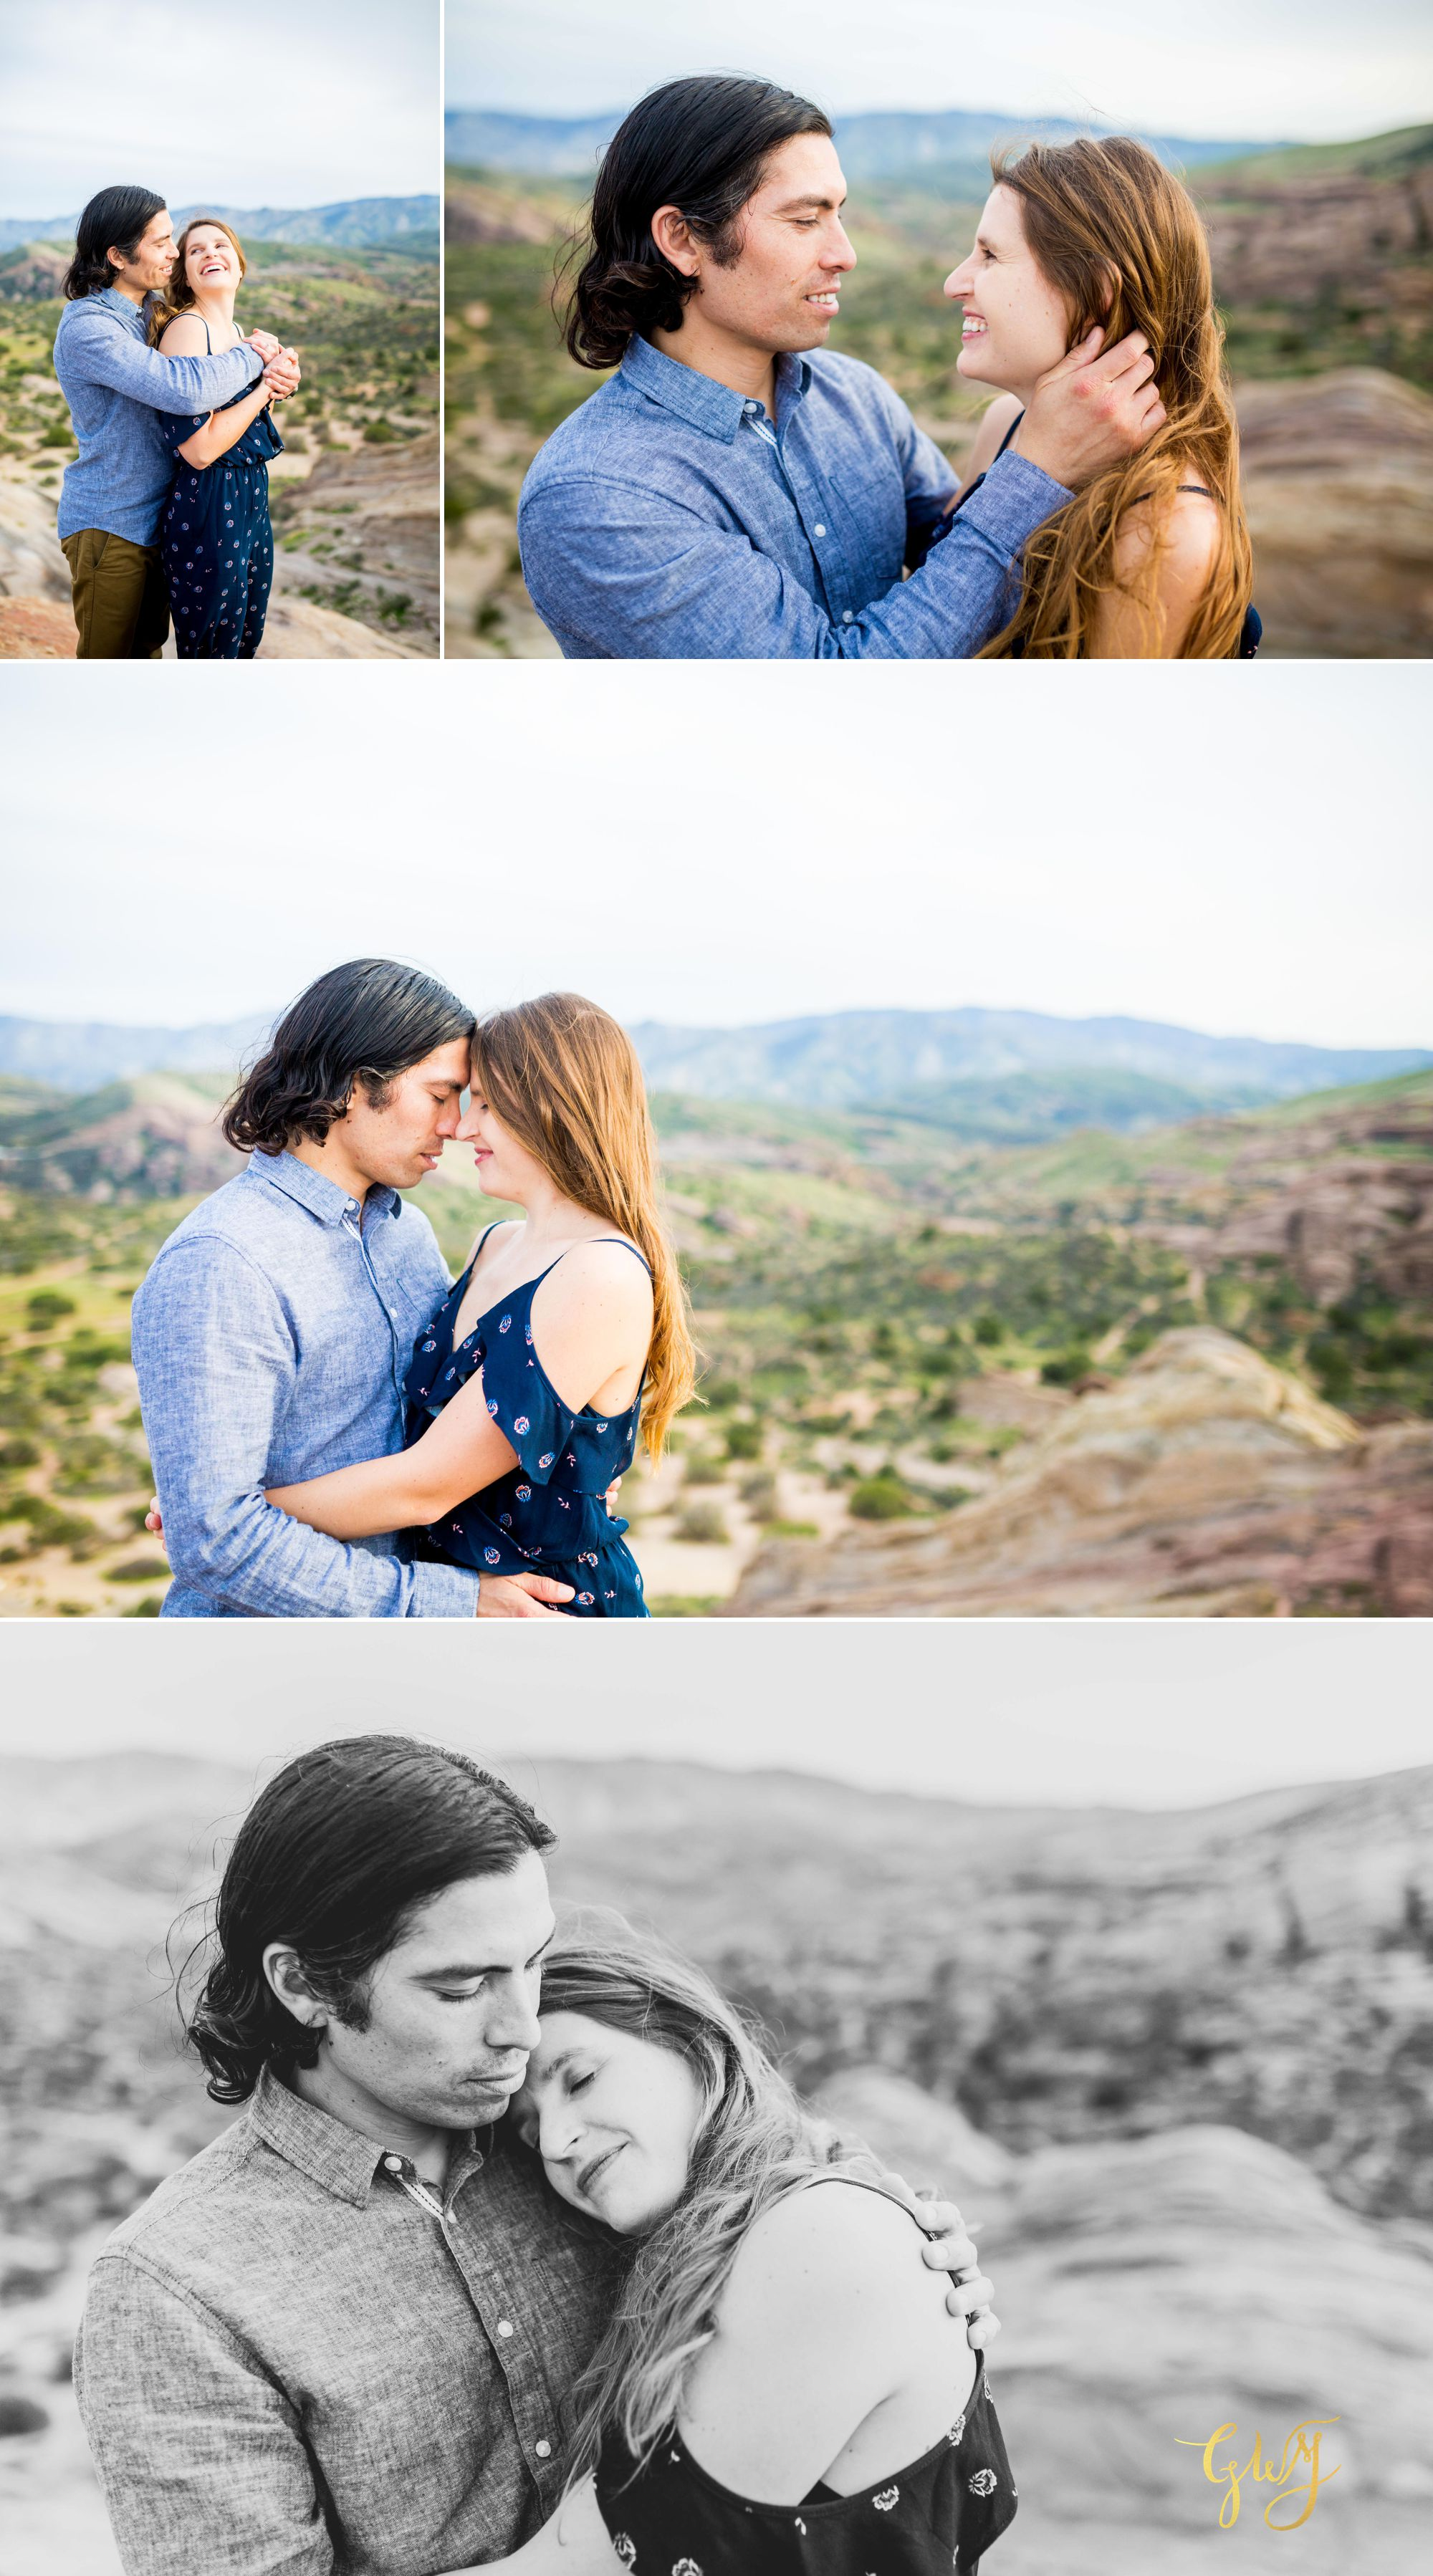 Jose + Sarah Vasquez Rocks Hike at Sunset Adventurous Engagement by Glass Woods Media 12.jpg